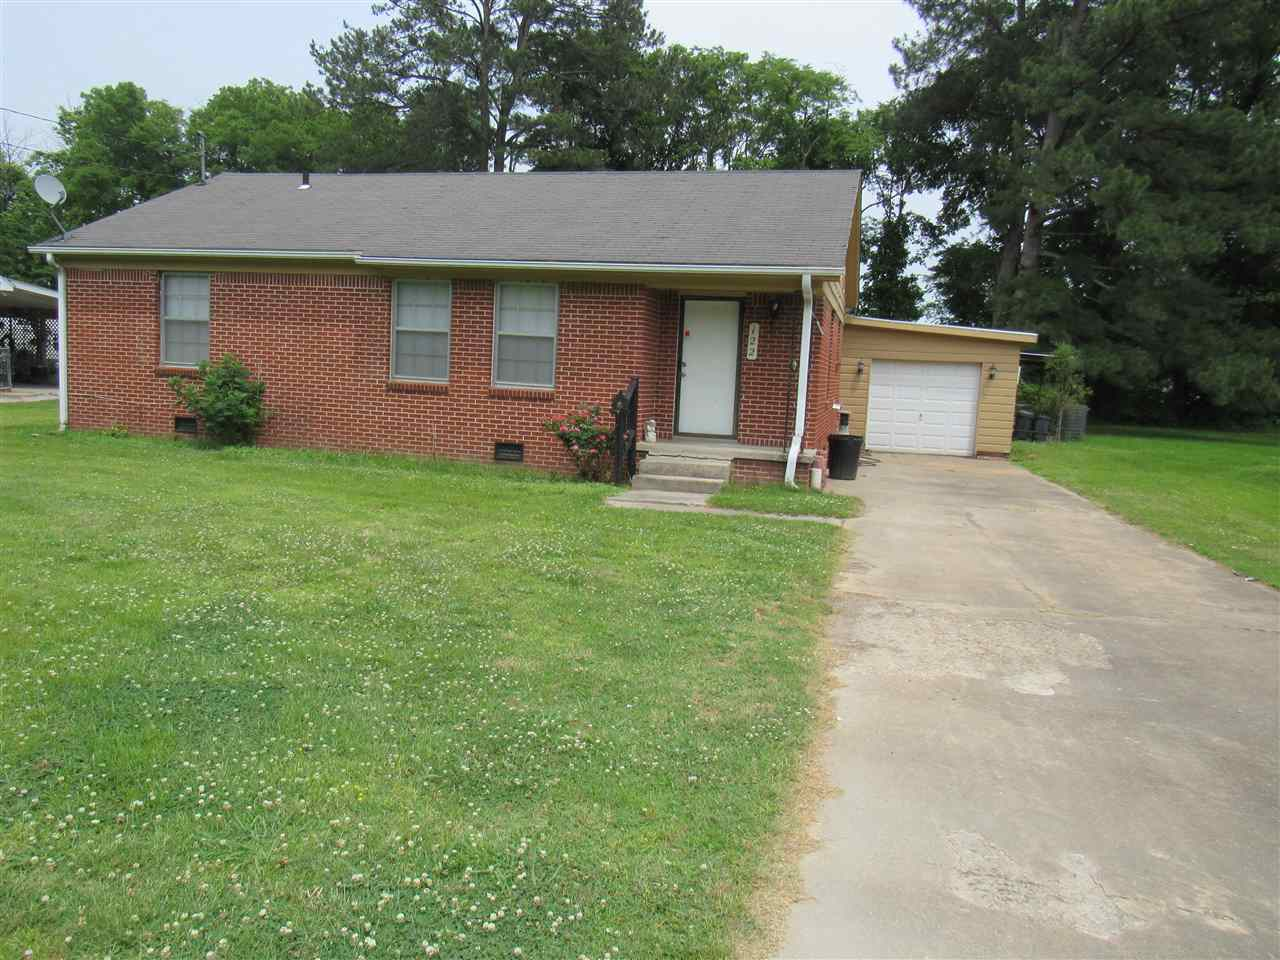 122 Eastlawn Dr,Dyersburg,Tennessee 38024,3 Bedrooms Bedrooms,1 BathroomBathrooms,Residential,122 Eastlawn Dr,188557